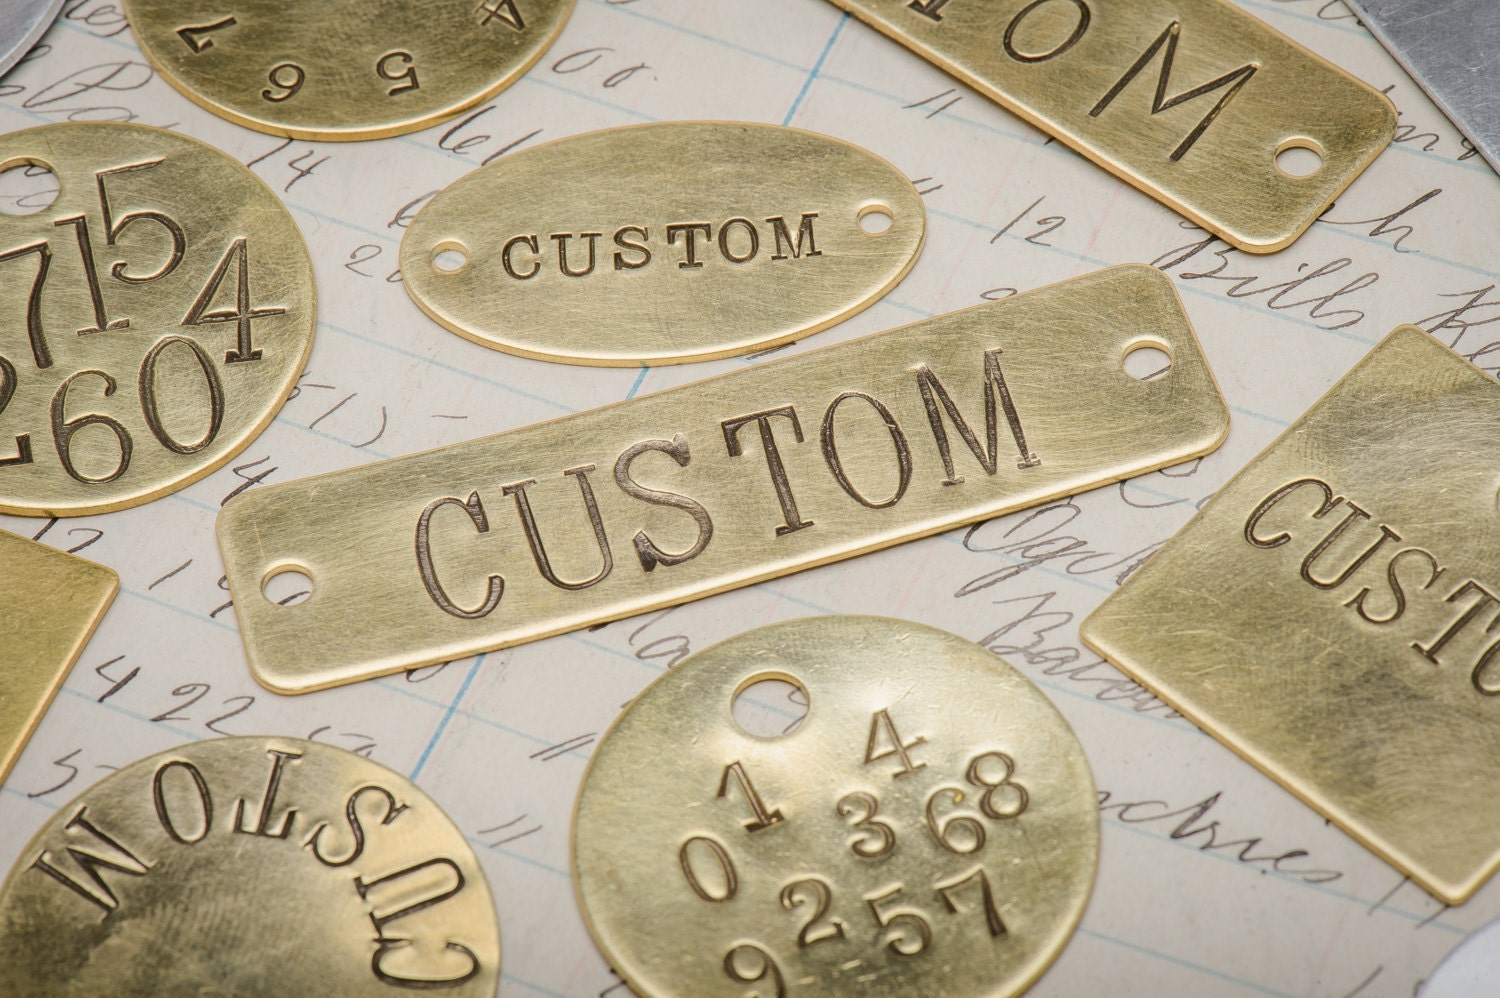 Custom hand punched brass and metal tag hand stamped key tag  5fcd07000